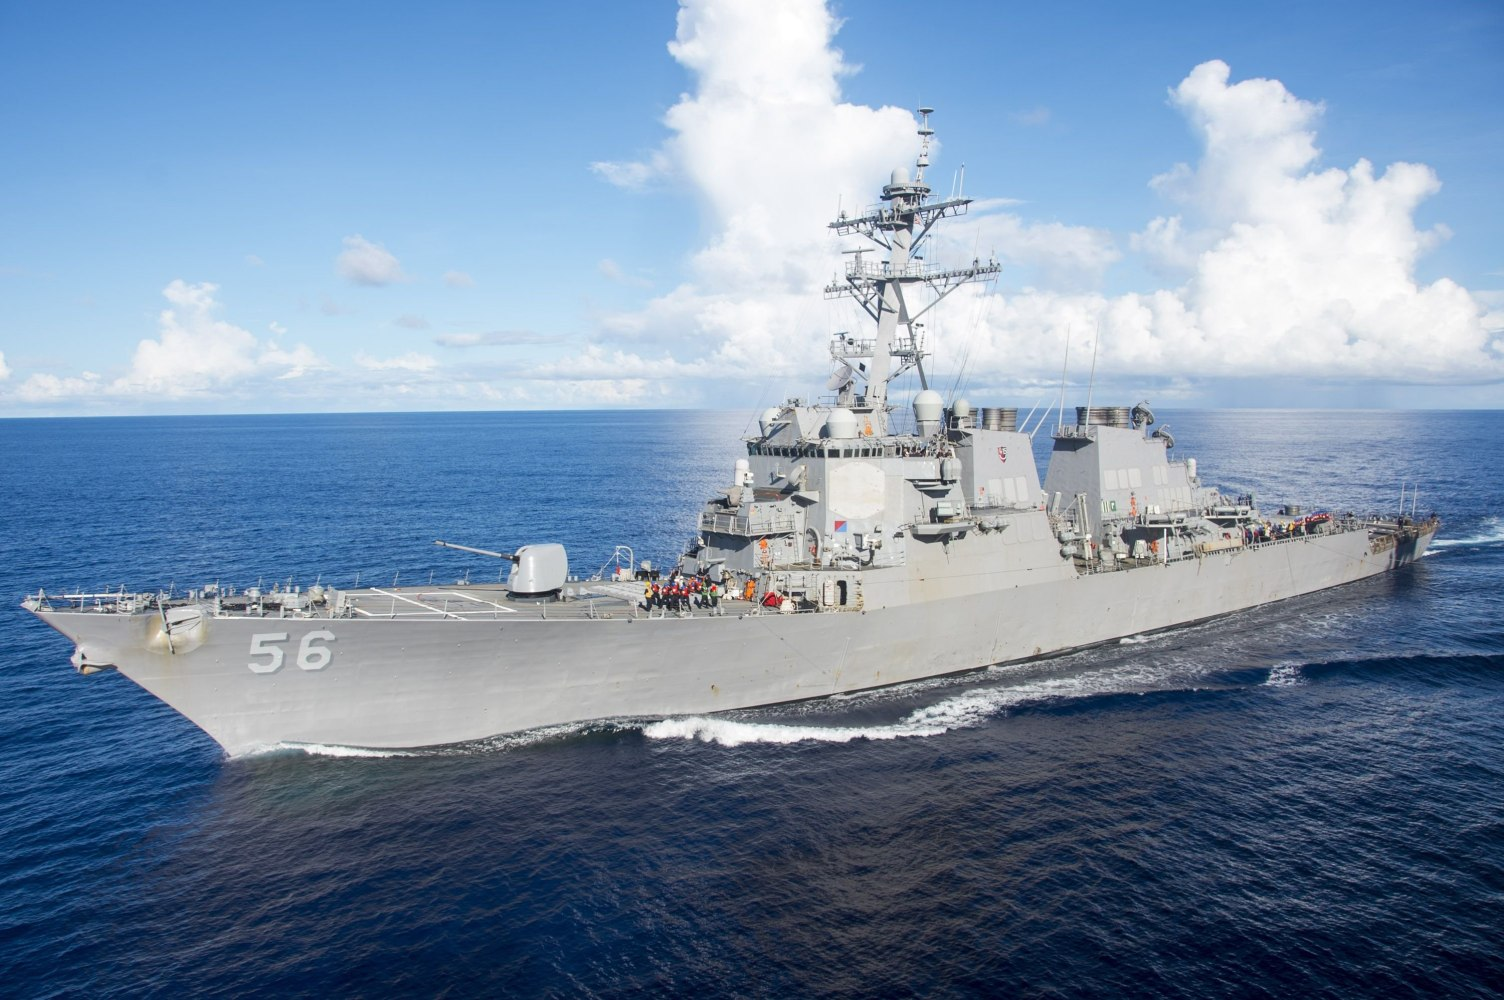 US sailors missing after warship collision